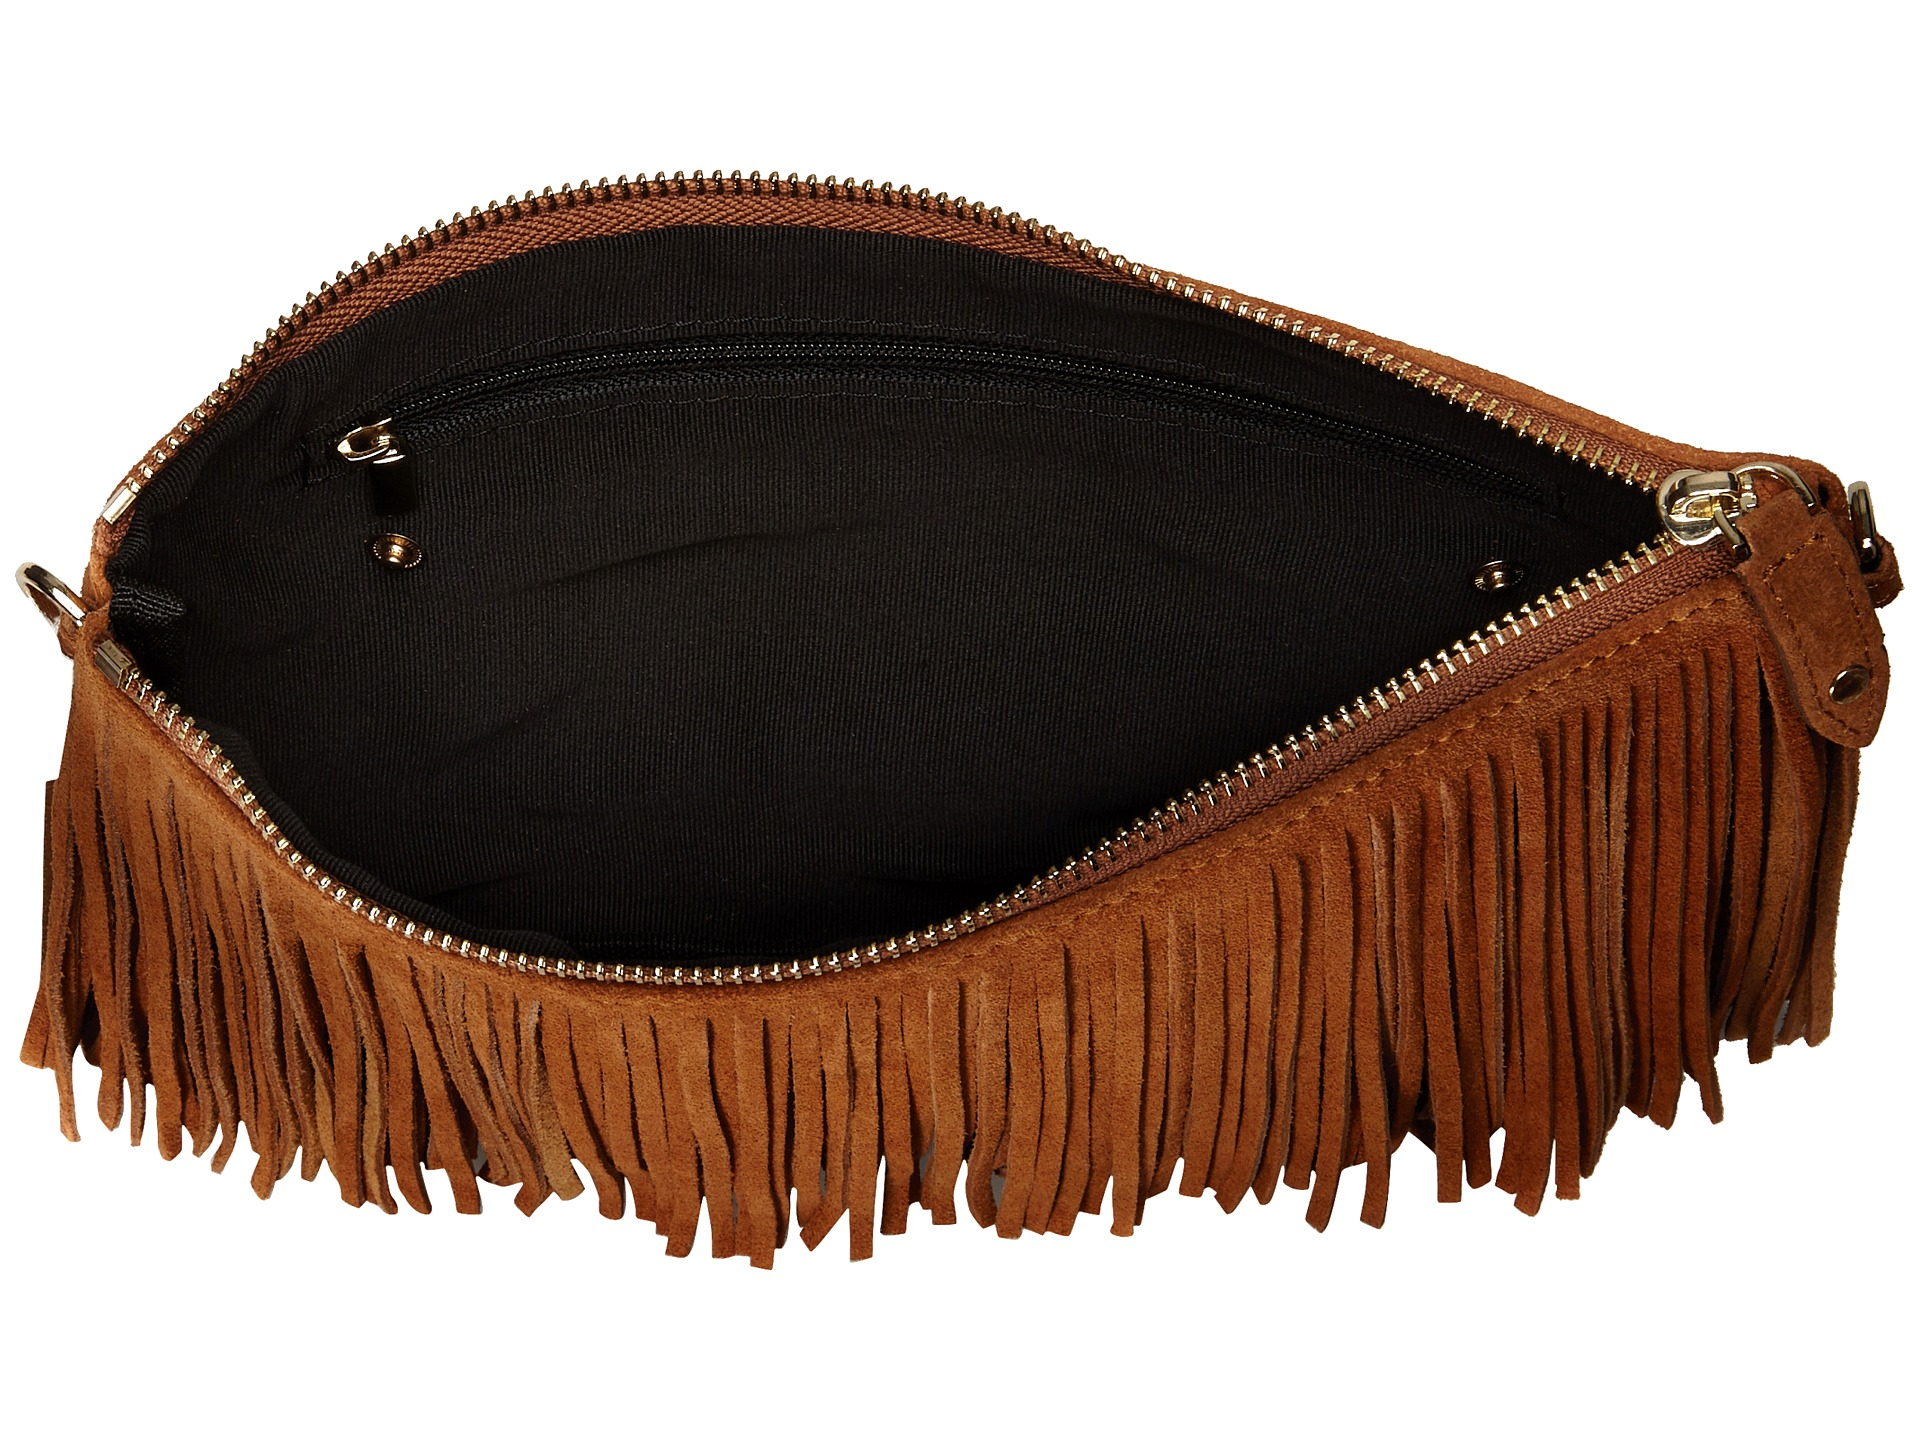 Mighty Purse Fringe X Body Bag Brown Suede Leather